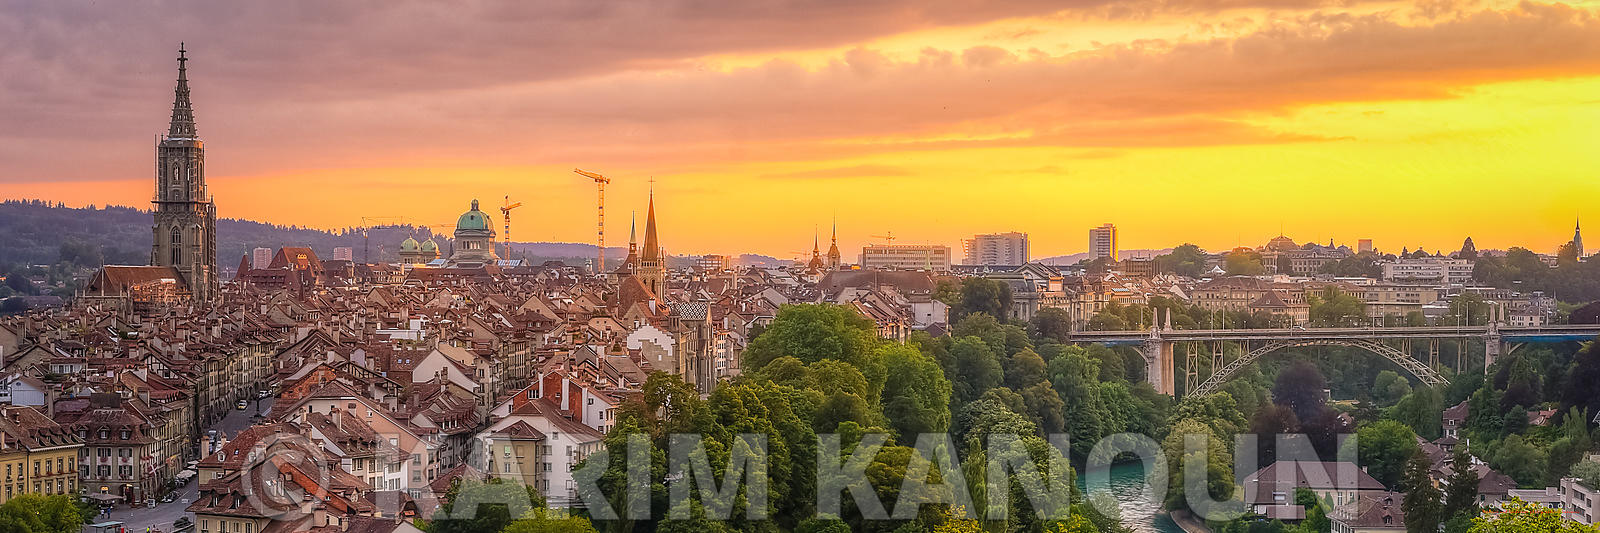 Panorama - Golden Sunset - Bern